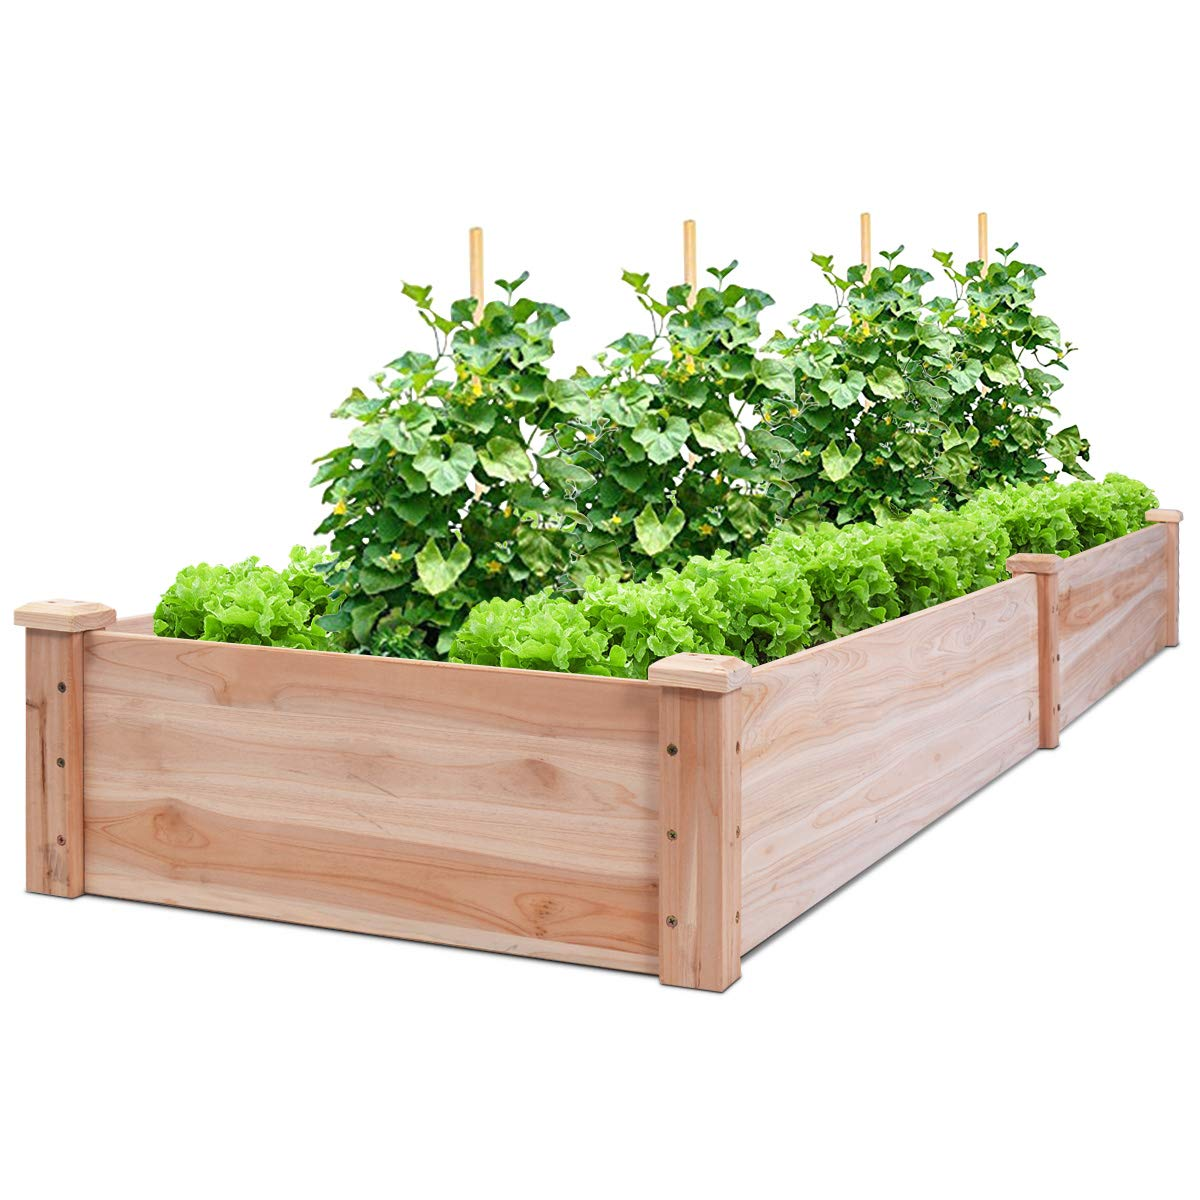 Giantex Raised Garden Bed Planter, Wooden Elevated Vegetable Planter Kit Box Grow for Patio Deck Balcony Outdoor Gardening, Natural 96 X24 X10